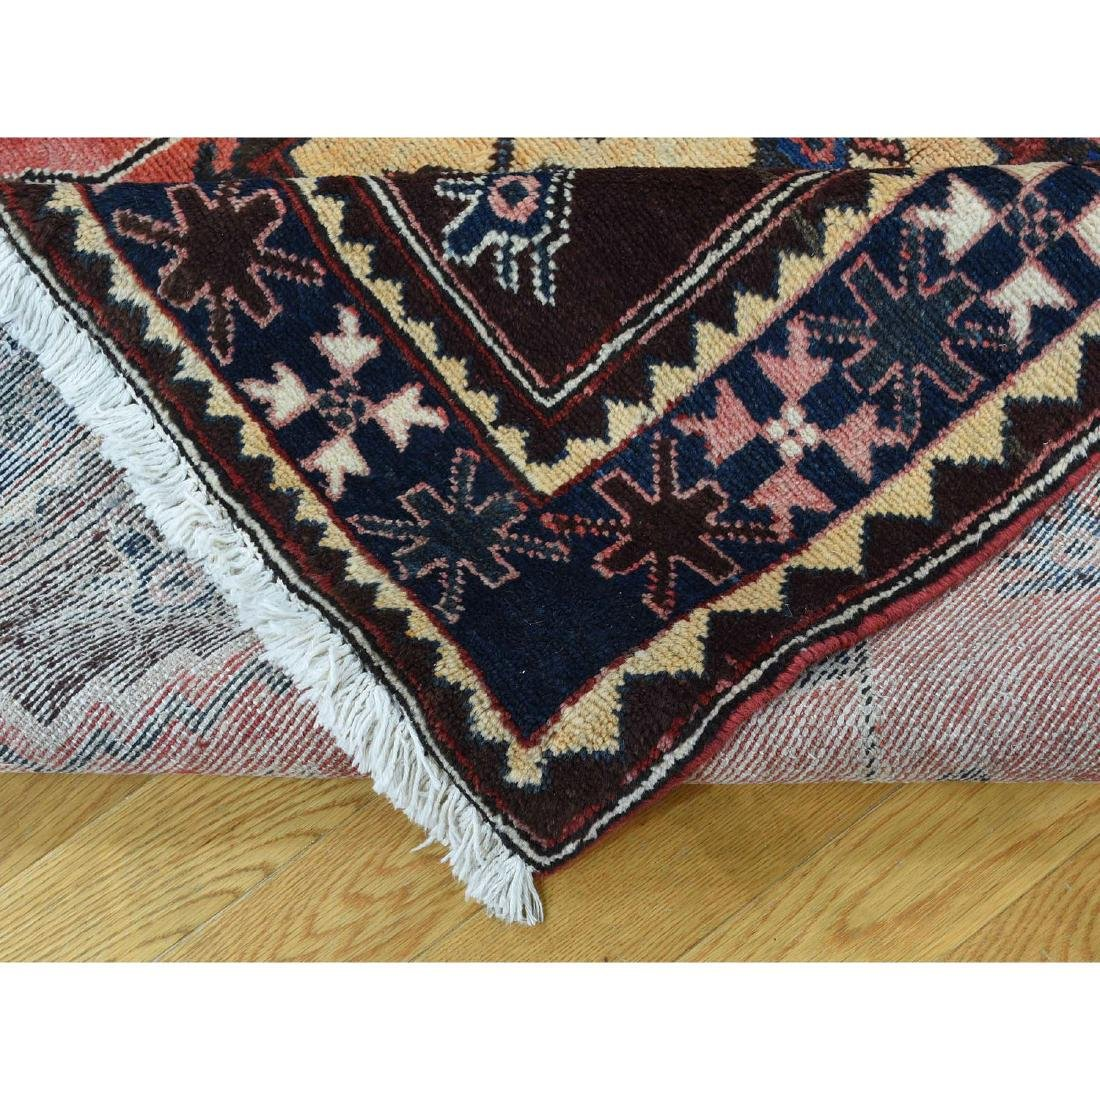 Semi Antique Persian Afshar Full Pile Mint Condition - 7